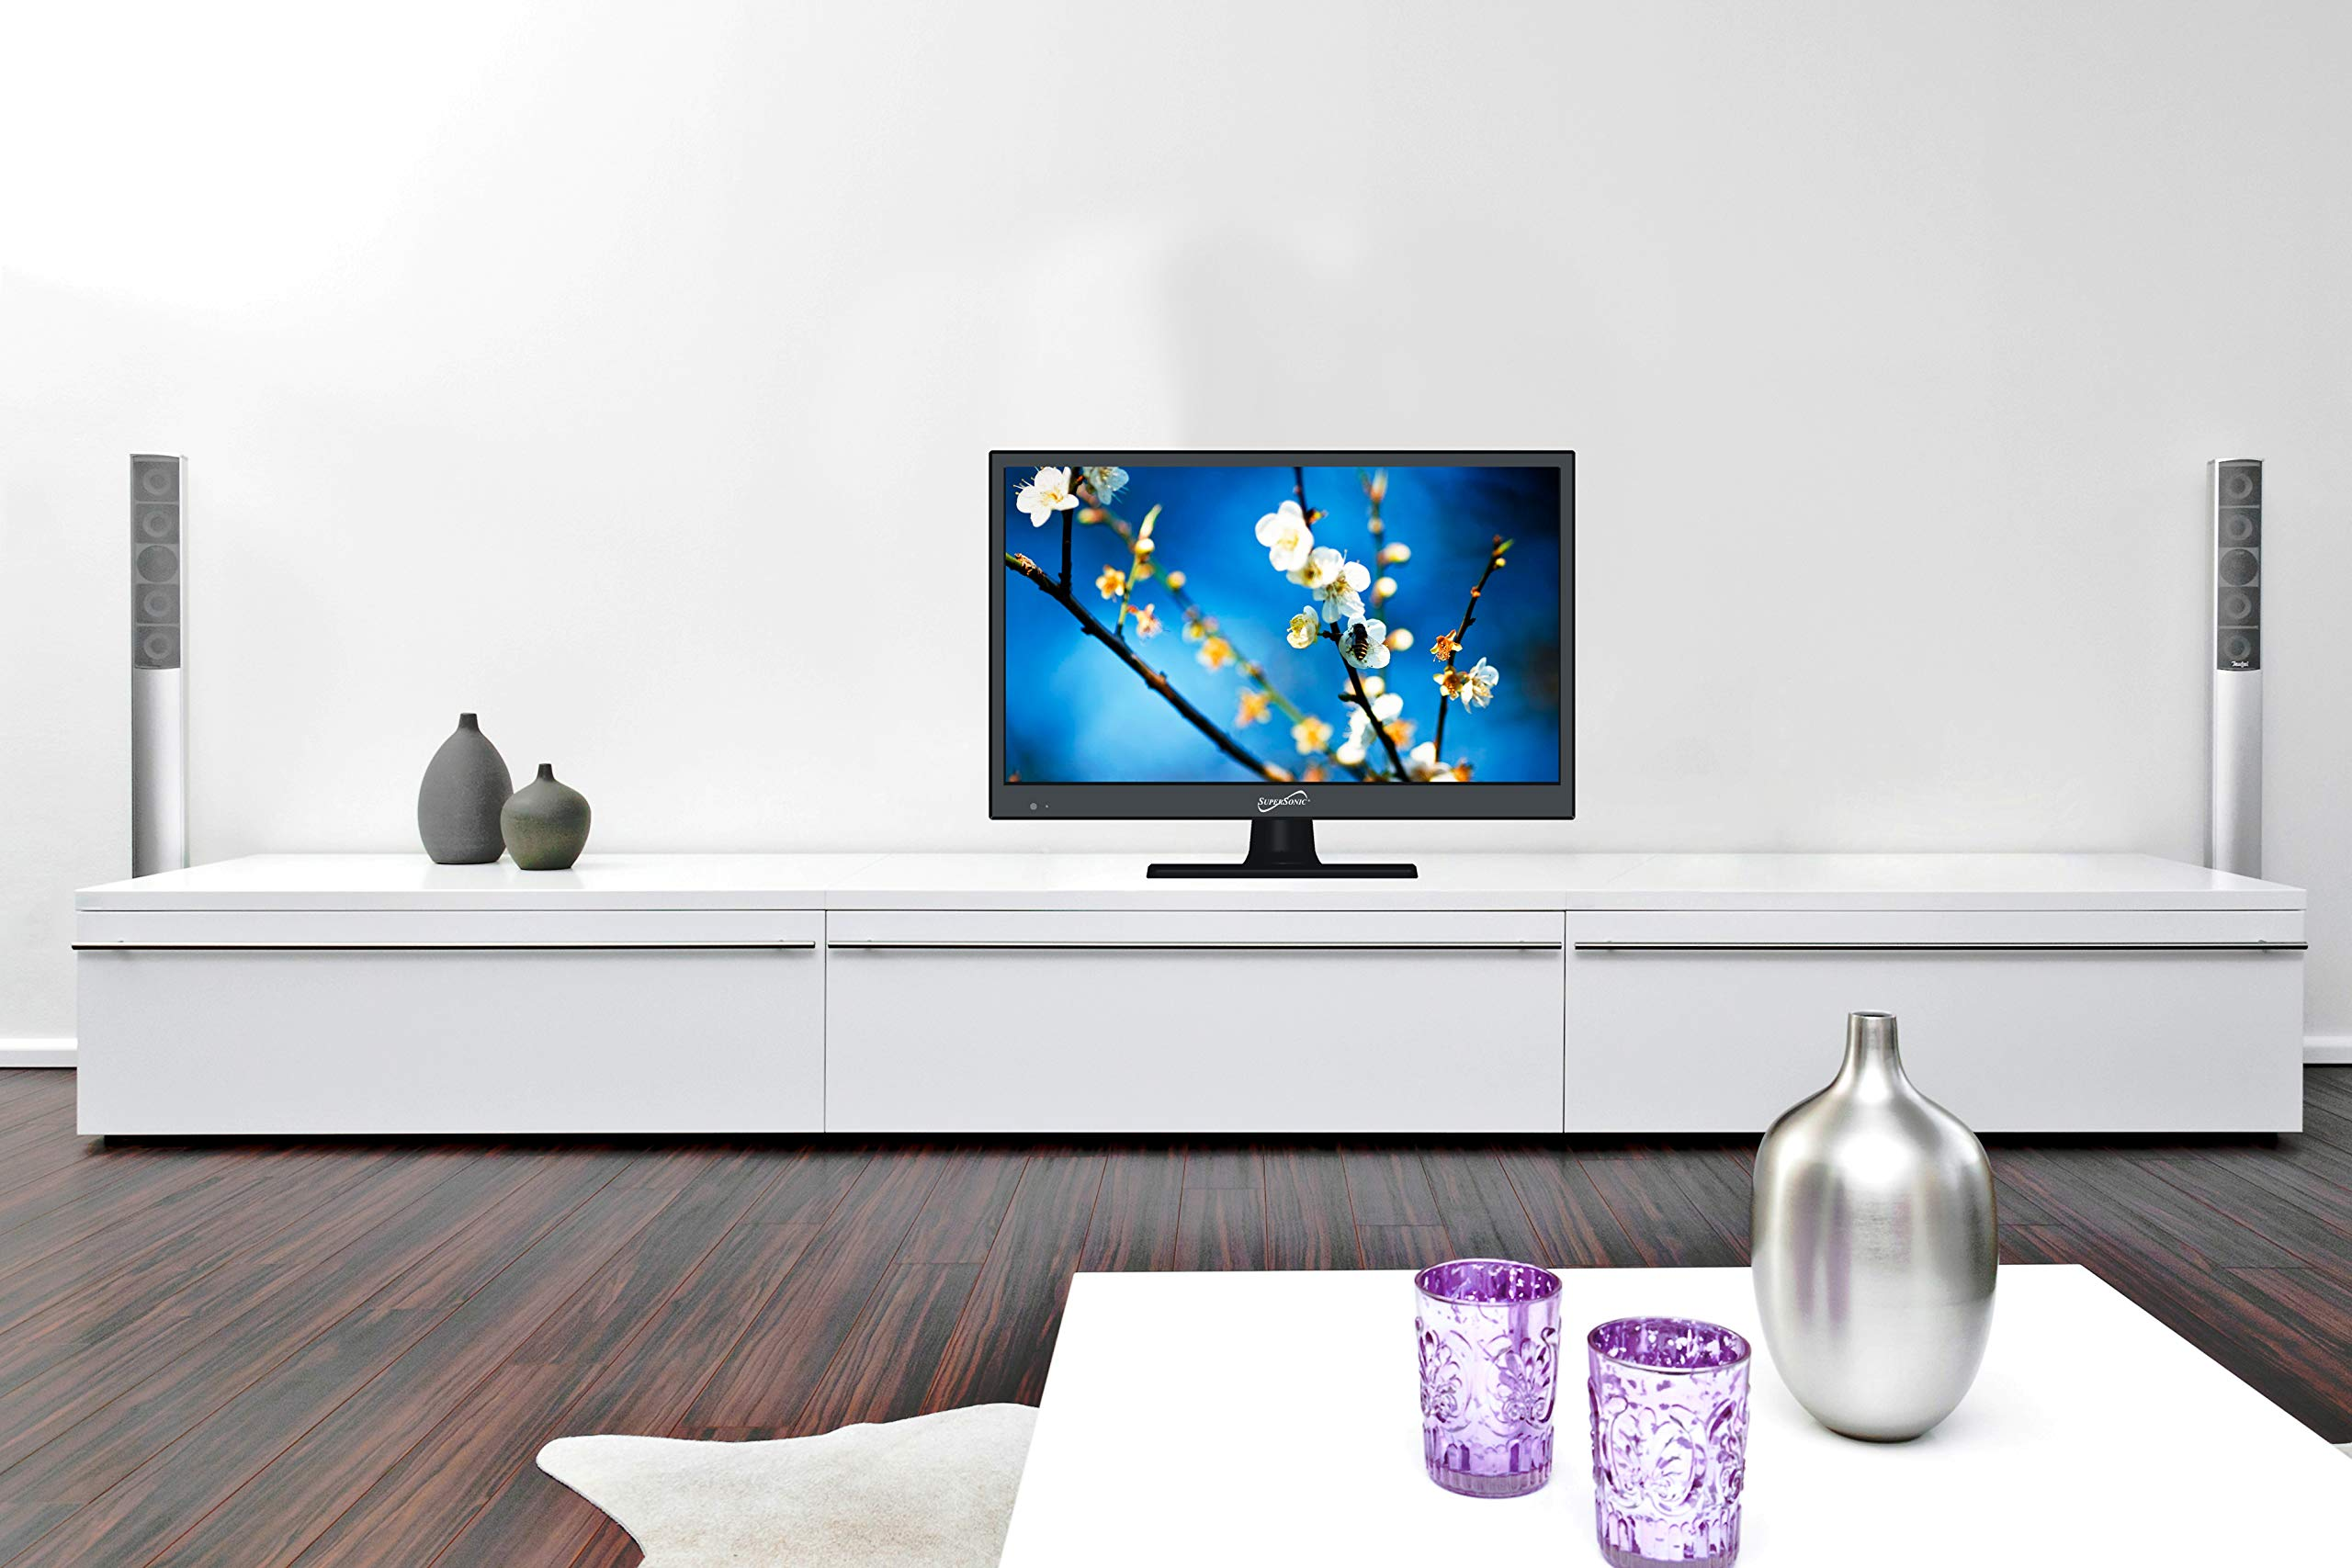 SuperSonic SC-1511H LED Widescreen HDTV 15'' Flat Screen with USB Compatibility, SD Card Reader, HDMI & AC/DC Input: Built-in Digital Noise Reduction with HDMI Cable Included (2019 Model)